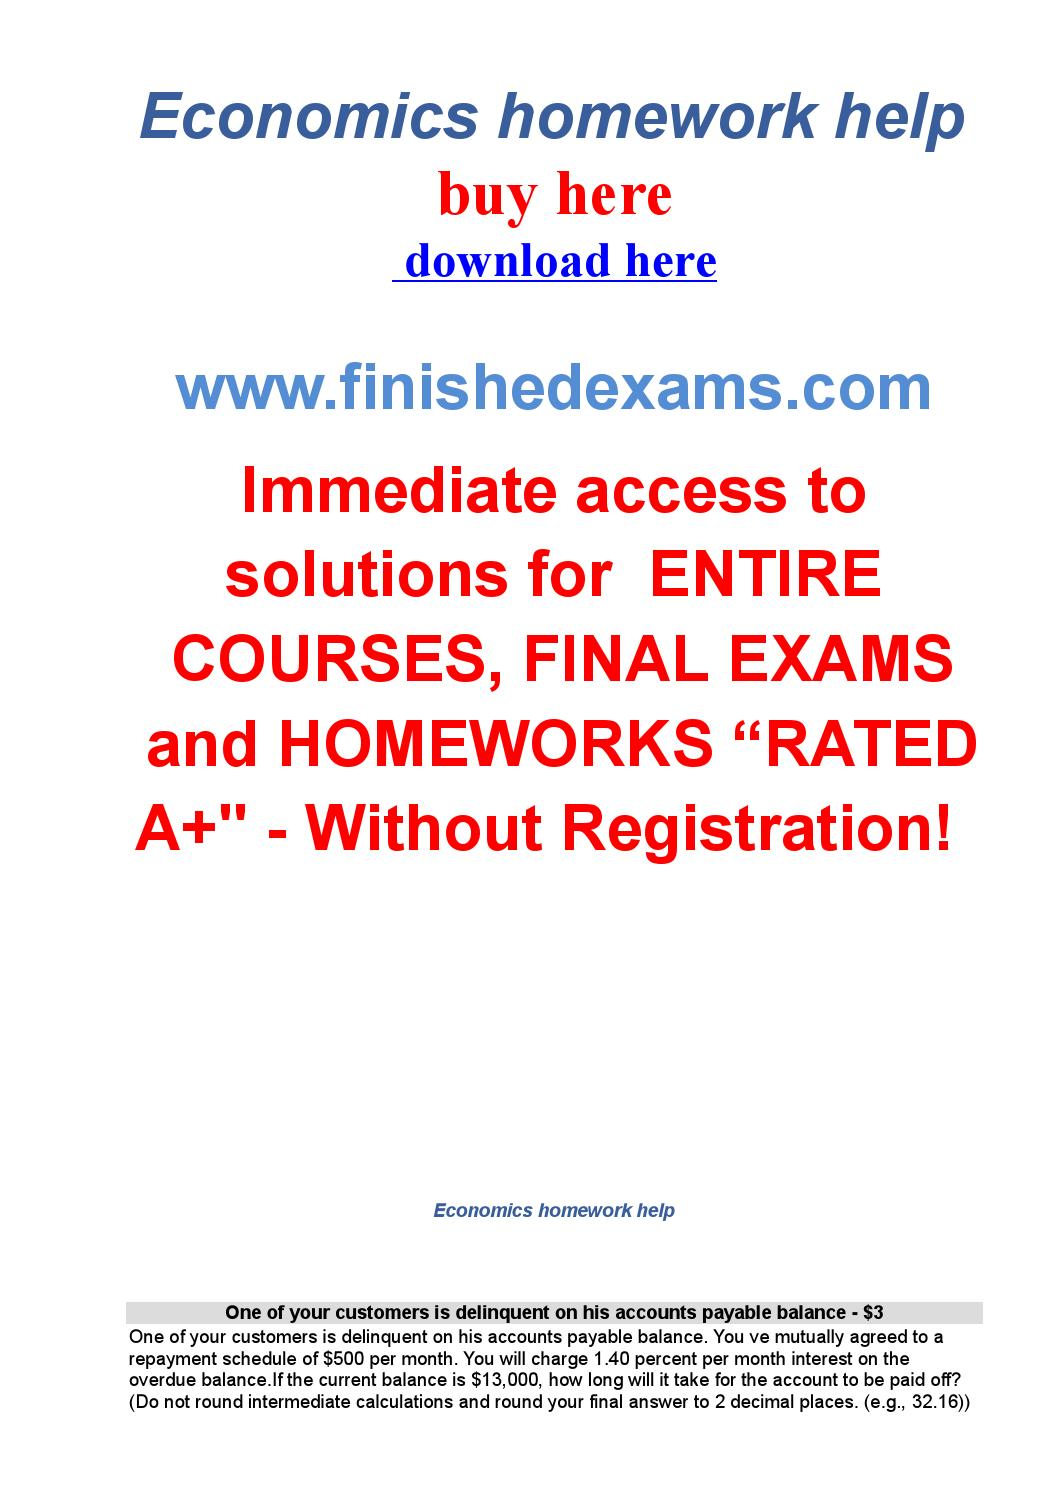 Homework help for economics